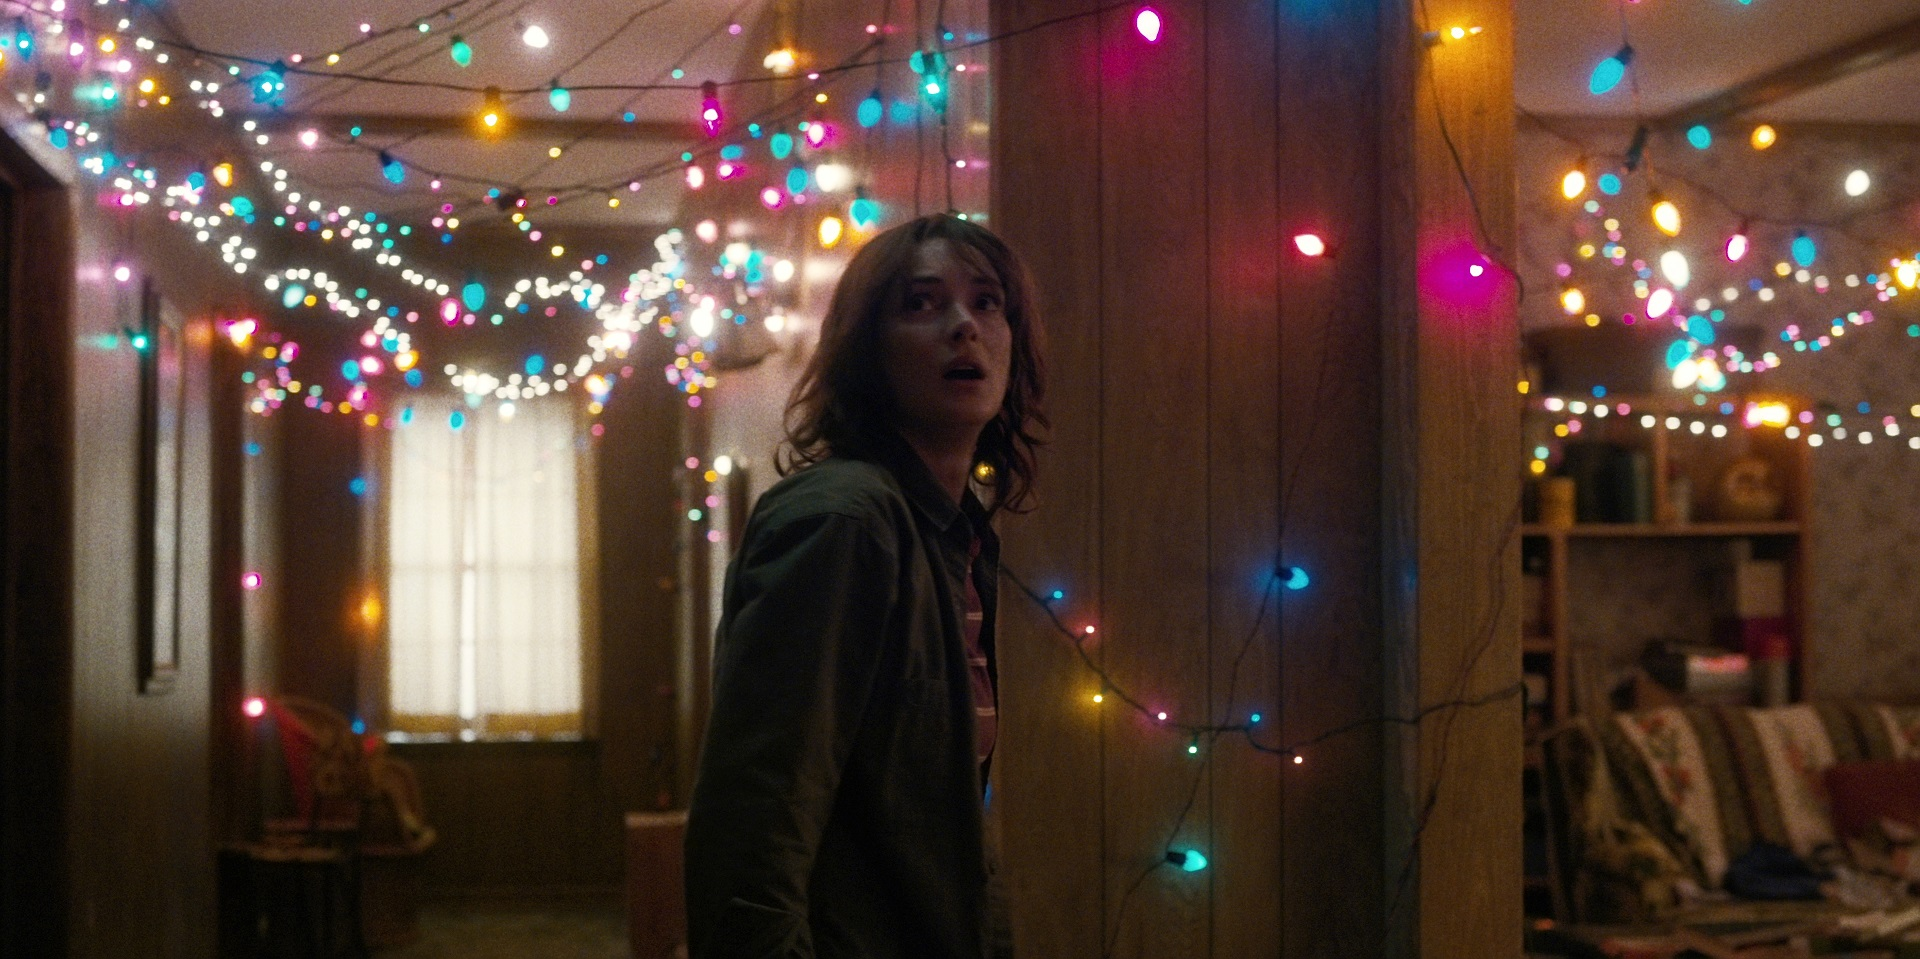 Stranger Things, Netflix's scary new drama, is only made stronger by its many flaws